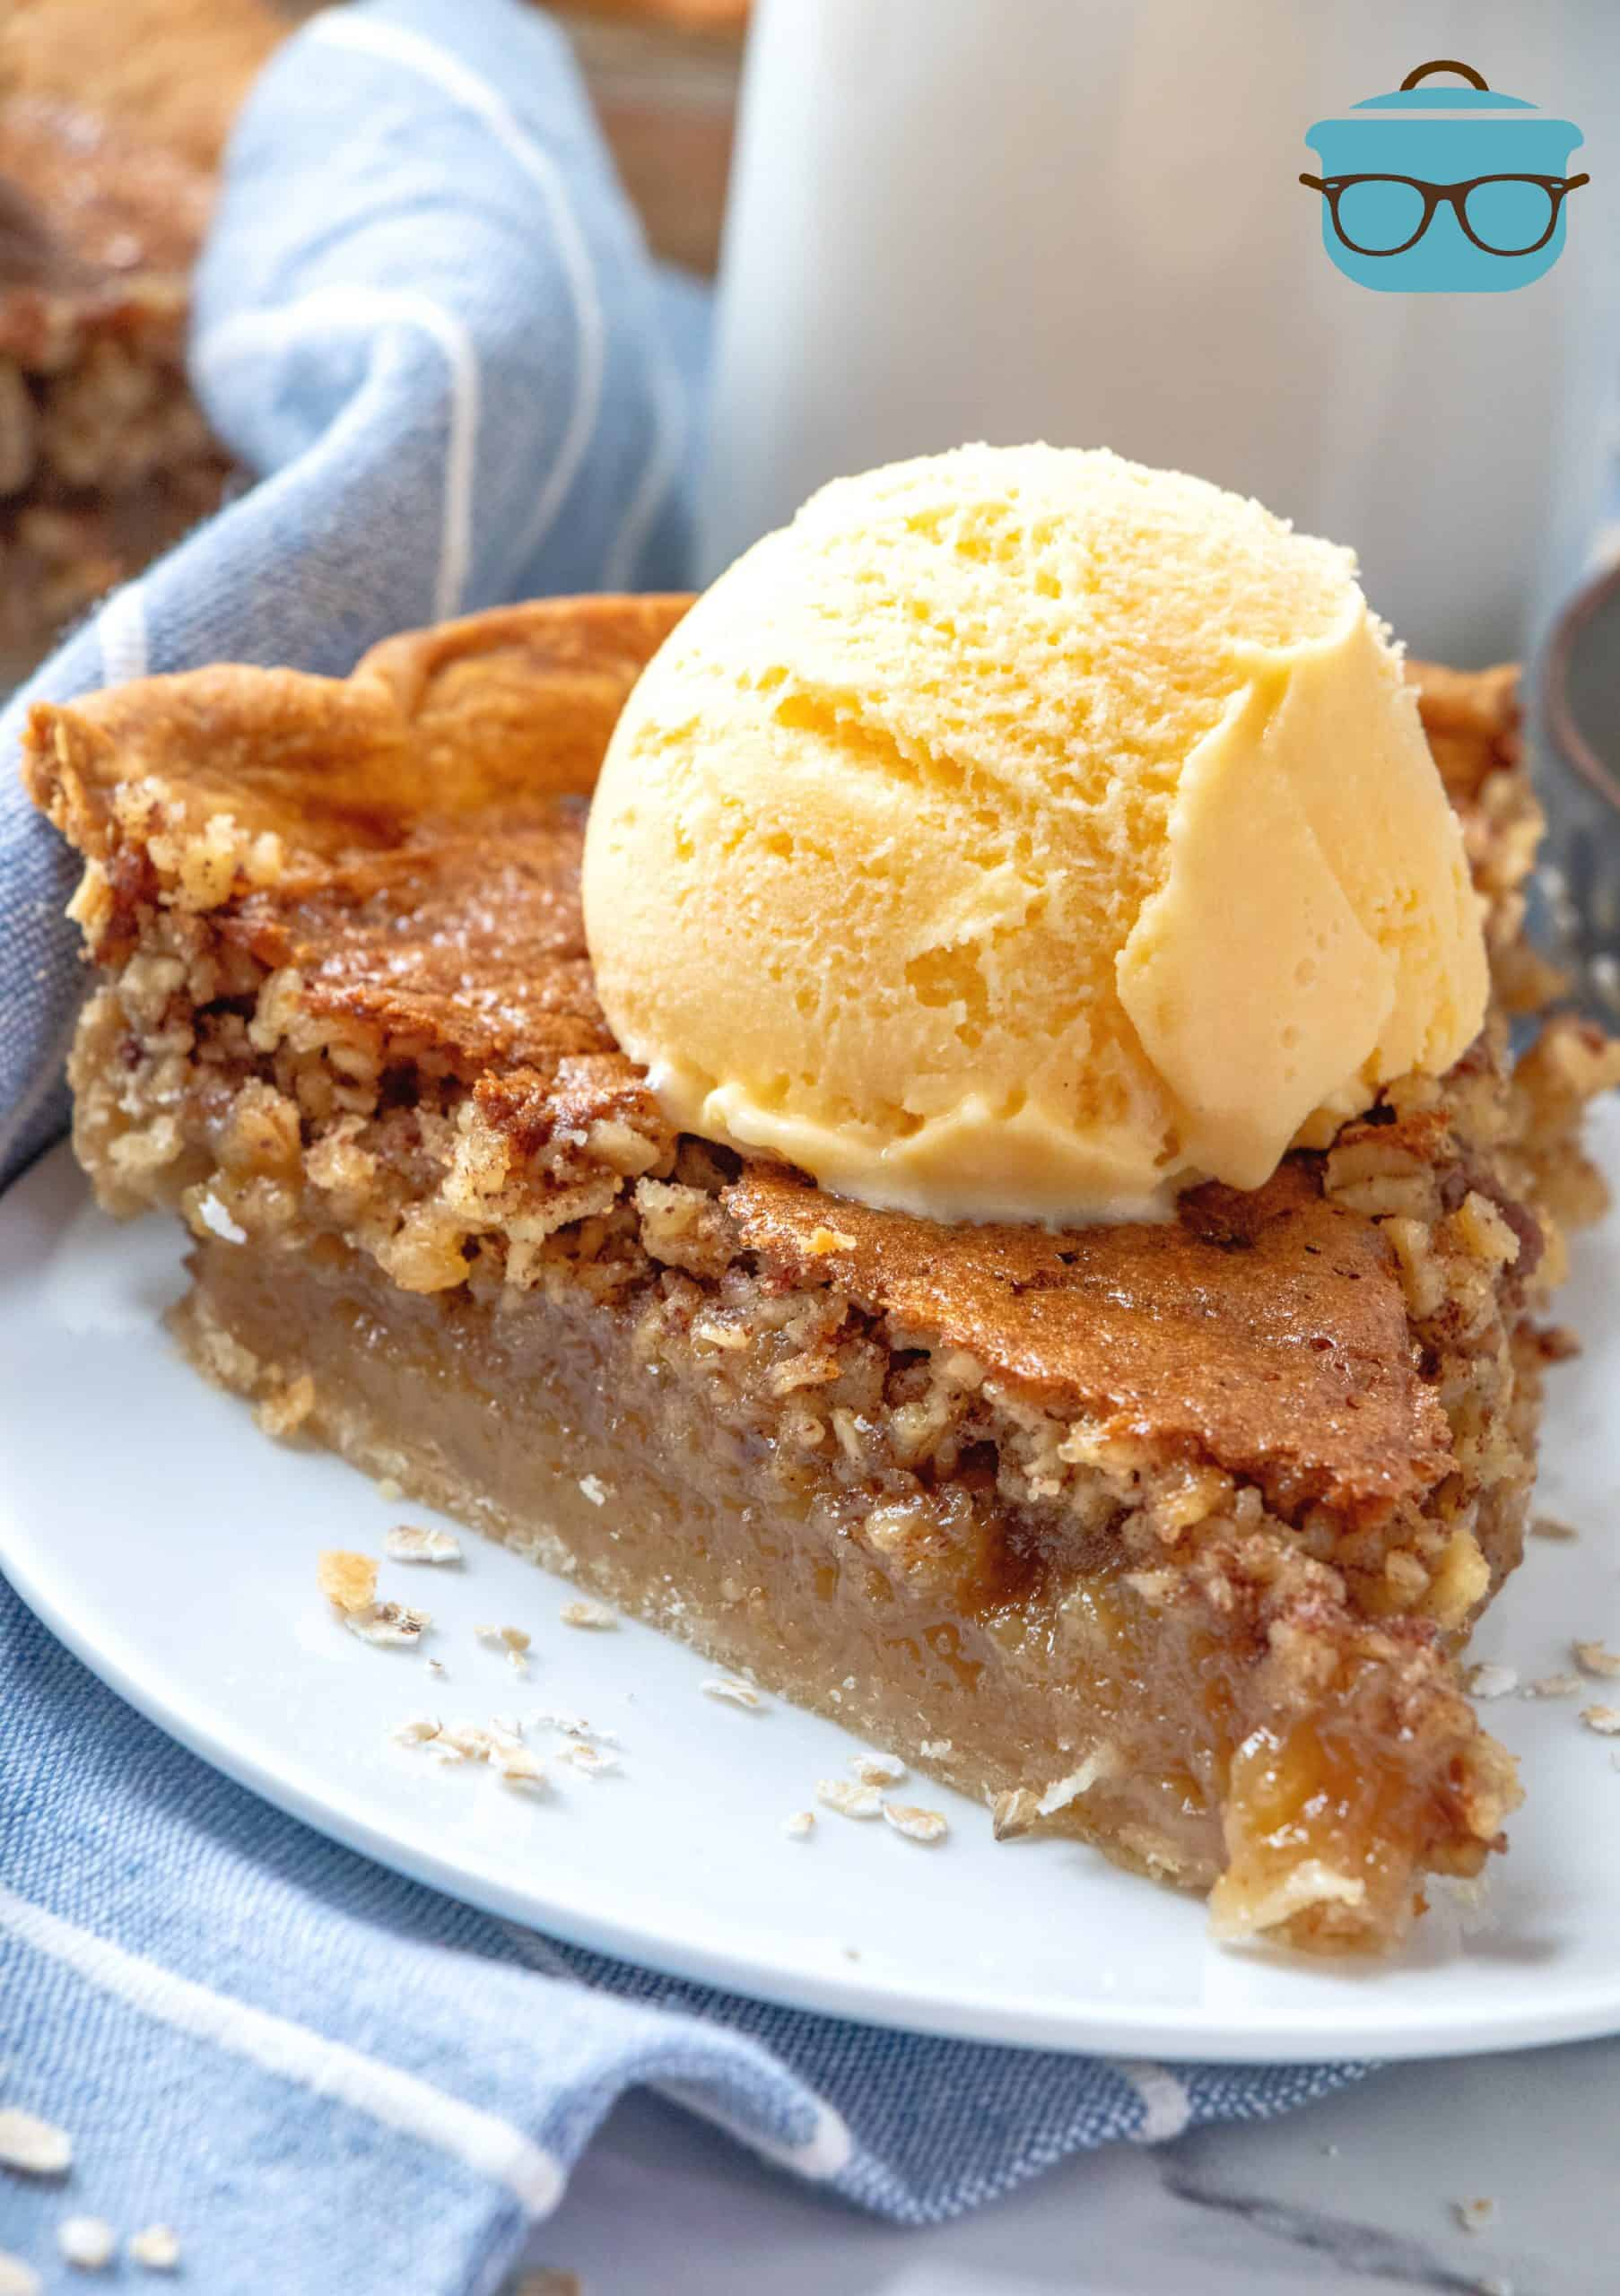 slice of Oatmeal Pie on a plate and topped with a scoop of ice cream